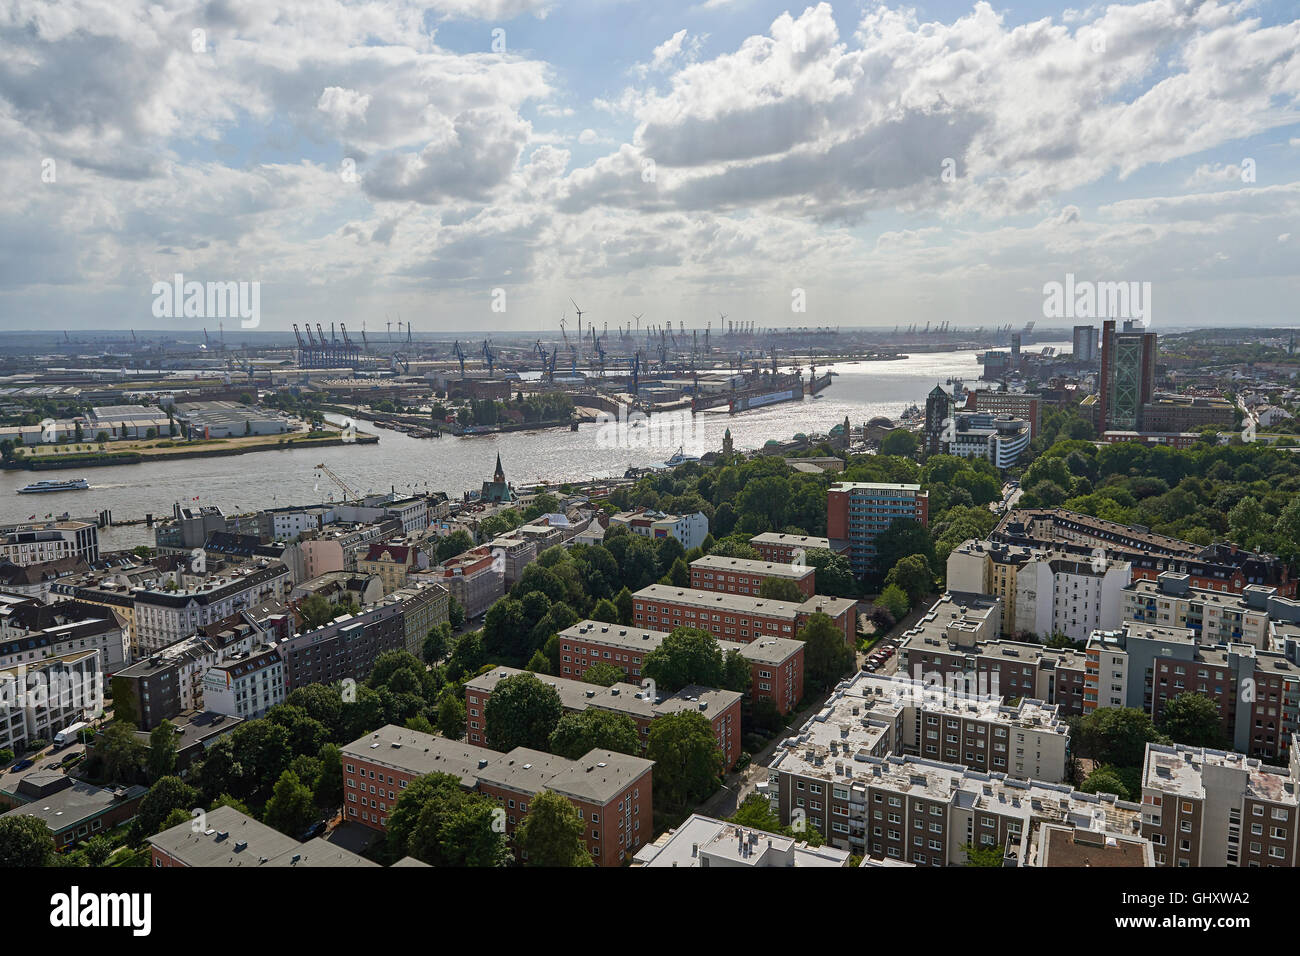 Aerial view of Hamburg harbour, Germany on a sunny day - Stock Image